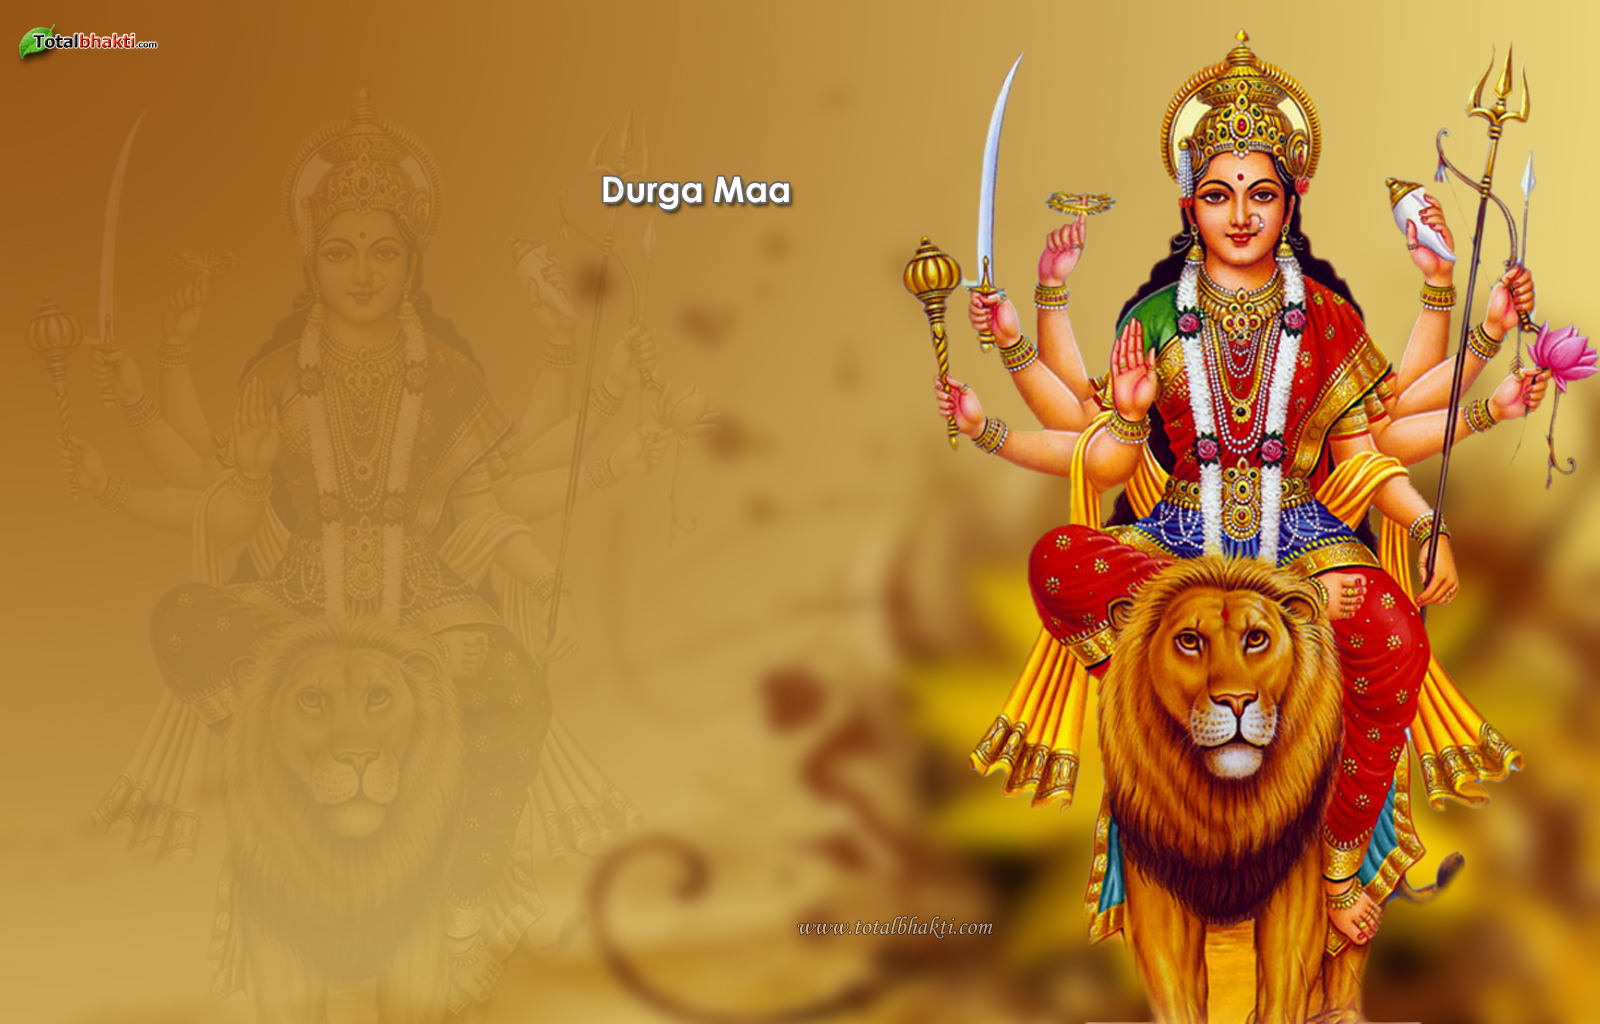 Download Adorable Durga Maa Pictures | Durga Goddess